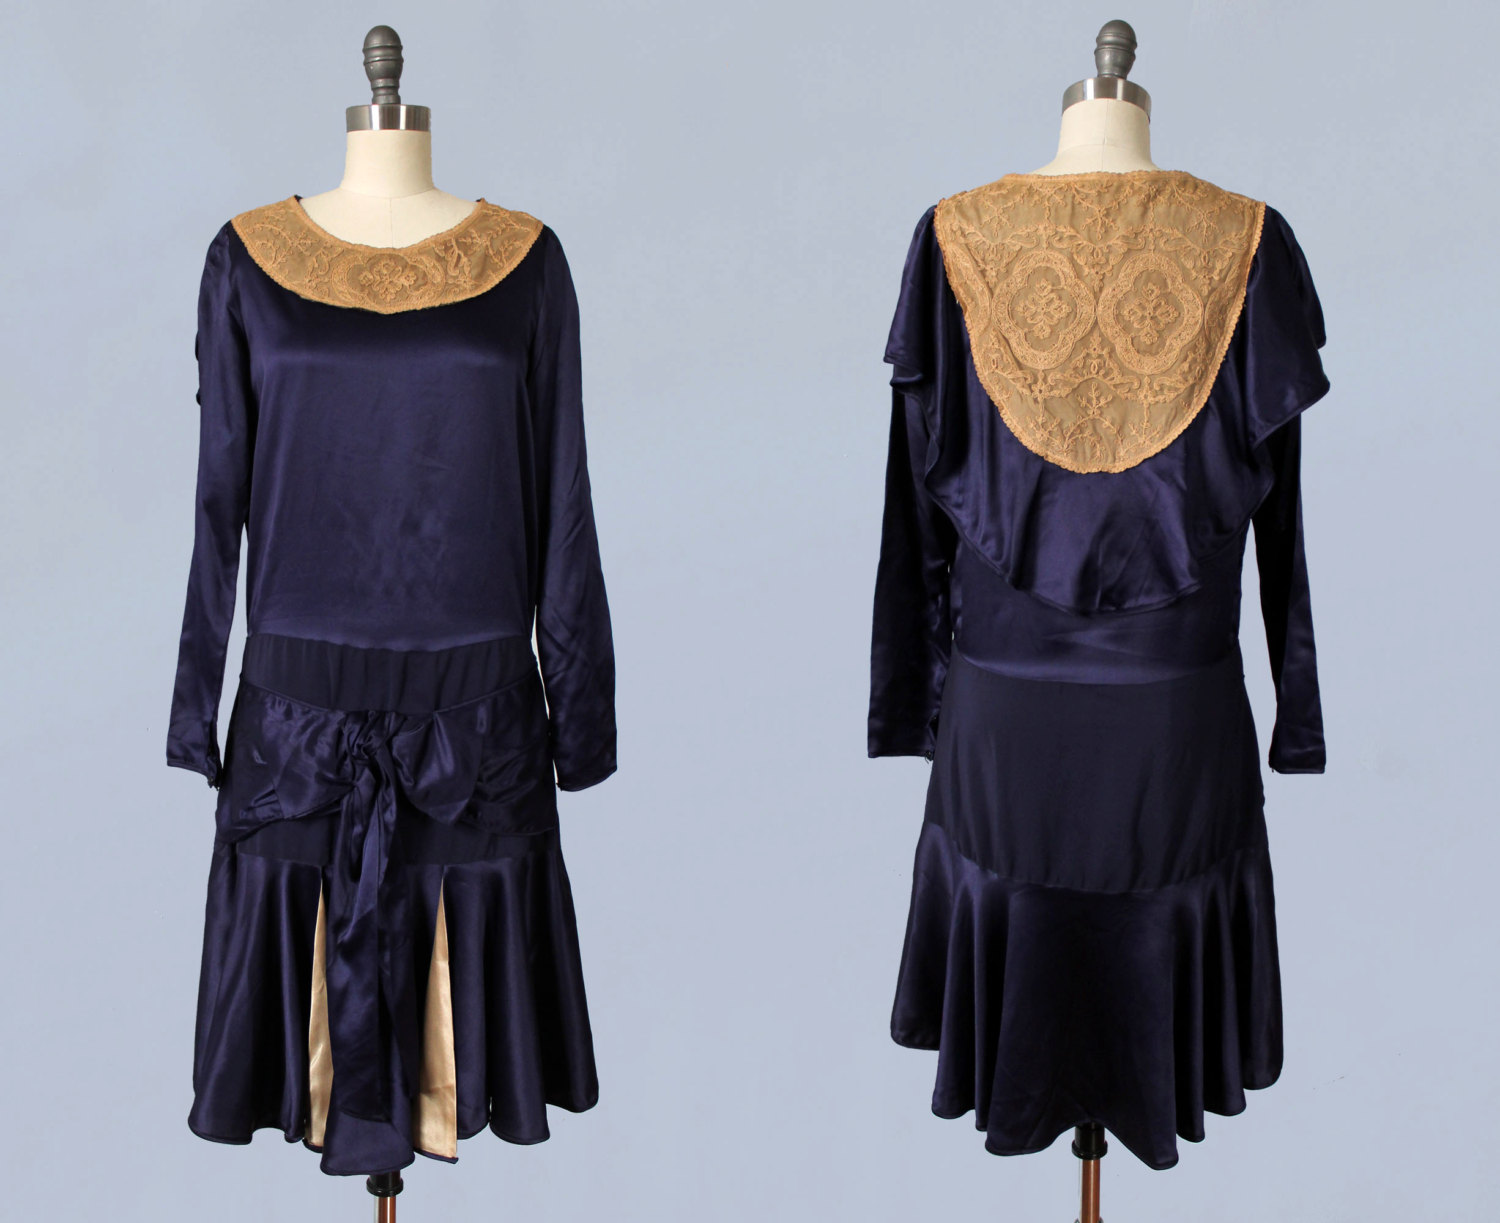 Silk satin and lace dress. 1920s.